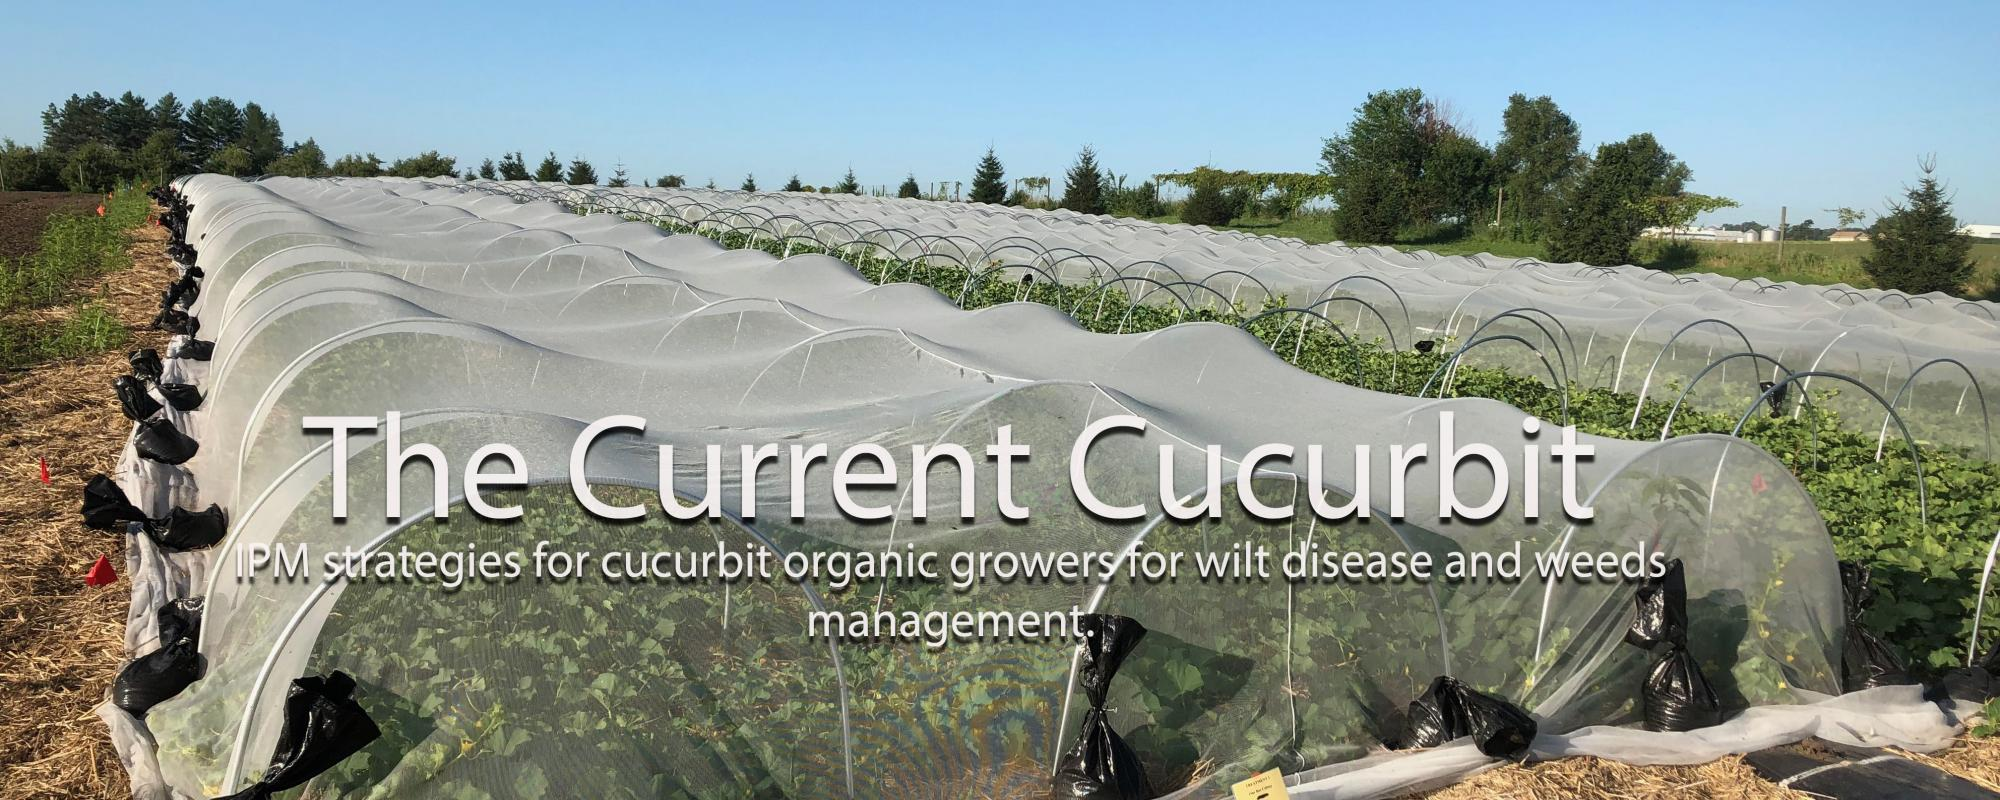 The Current Cucurbit IPM strategies for cucurbit organic growers for wilt disease and weeds management.